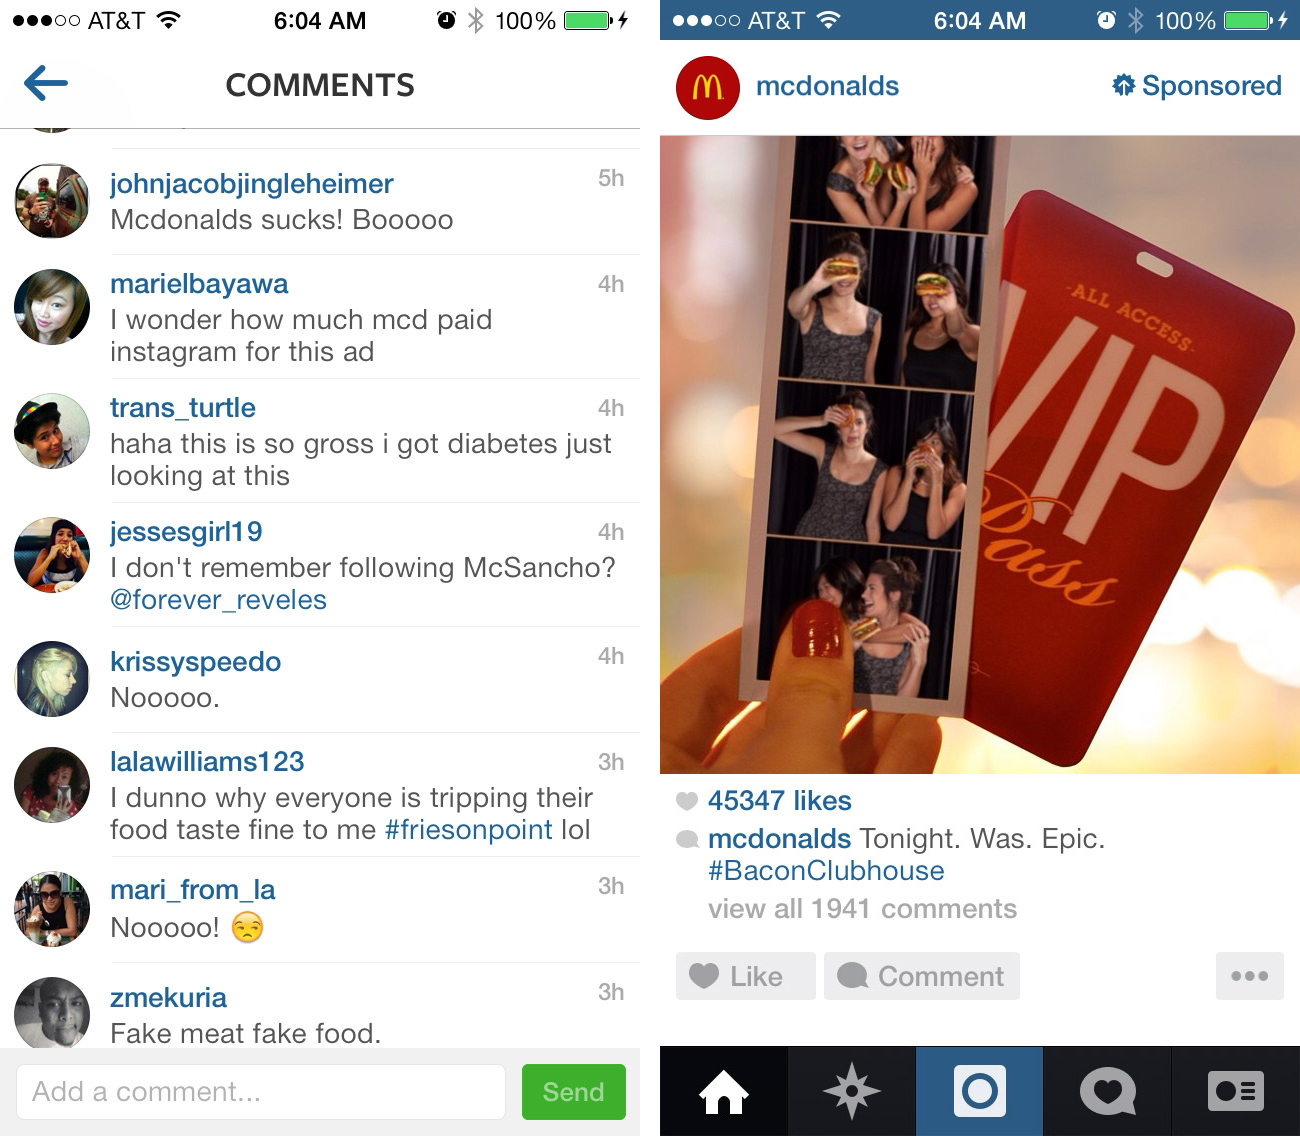 McDonald's Mistakenly Thinks It Is Loved By Internet, Will Not Be Mercilessly Mocked On Instagram